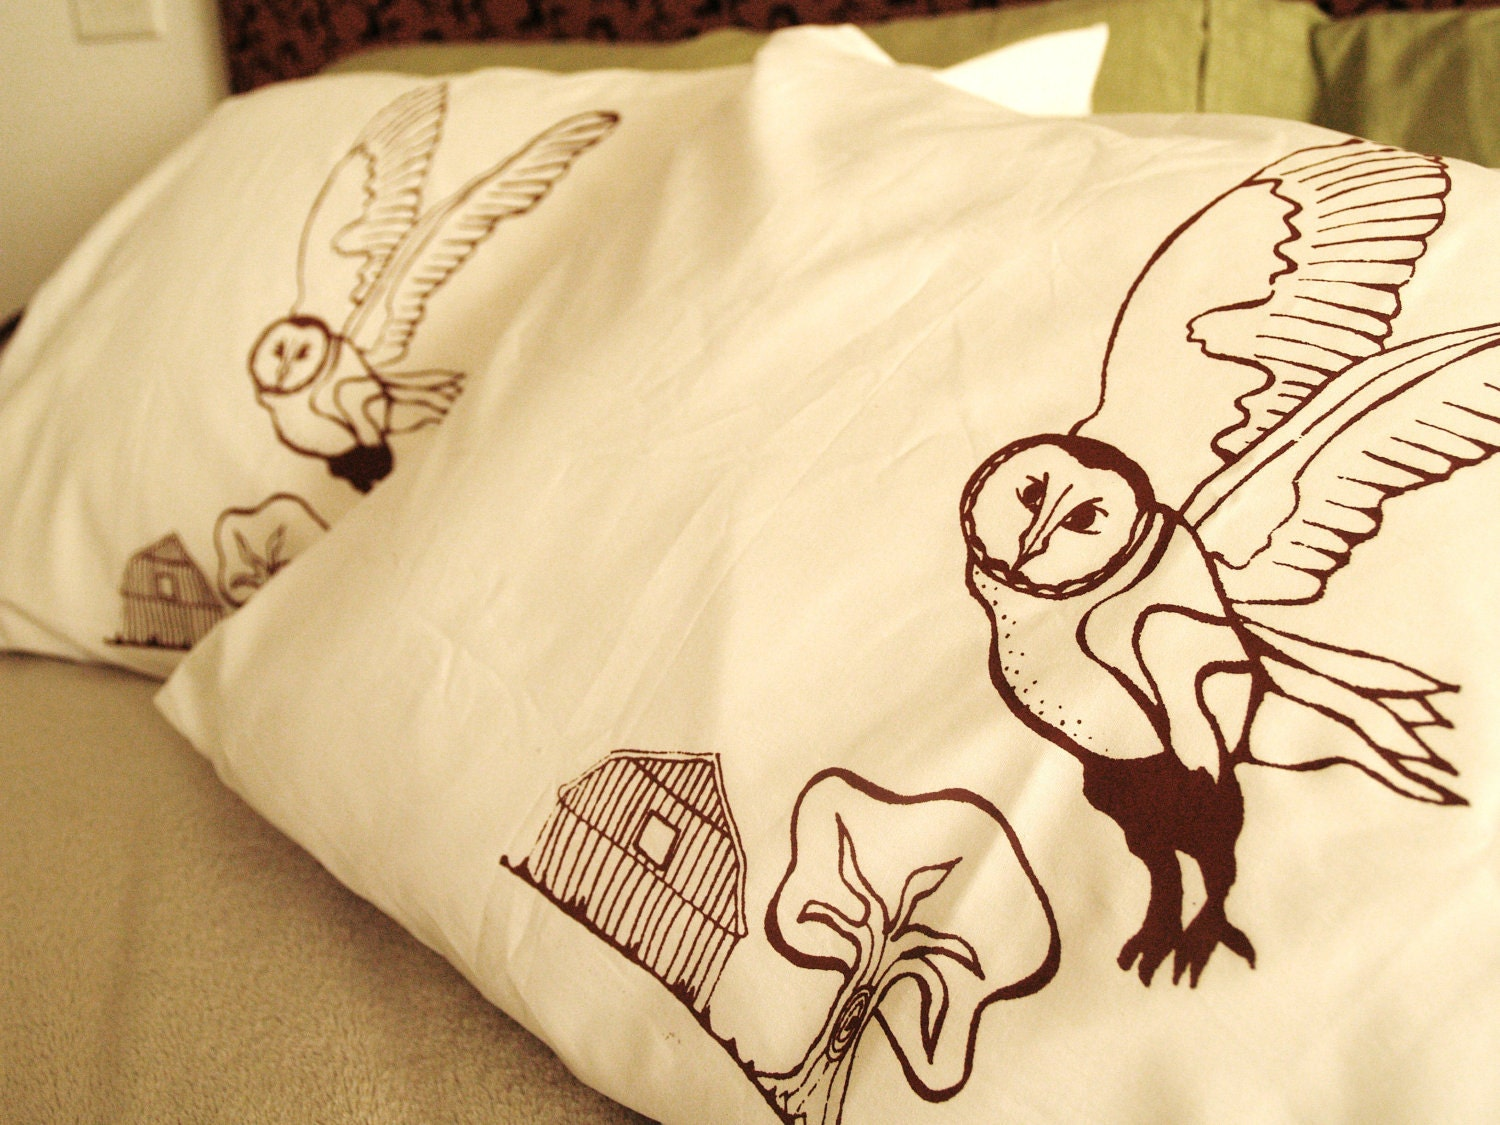 Owl Pillowcase Set - Barn And Tree Farm Print - Hand Screen Printed Brown Ink On White Cotton